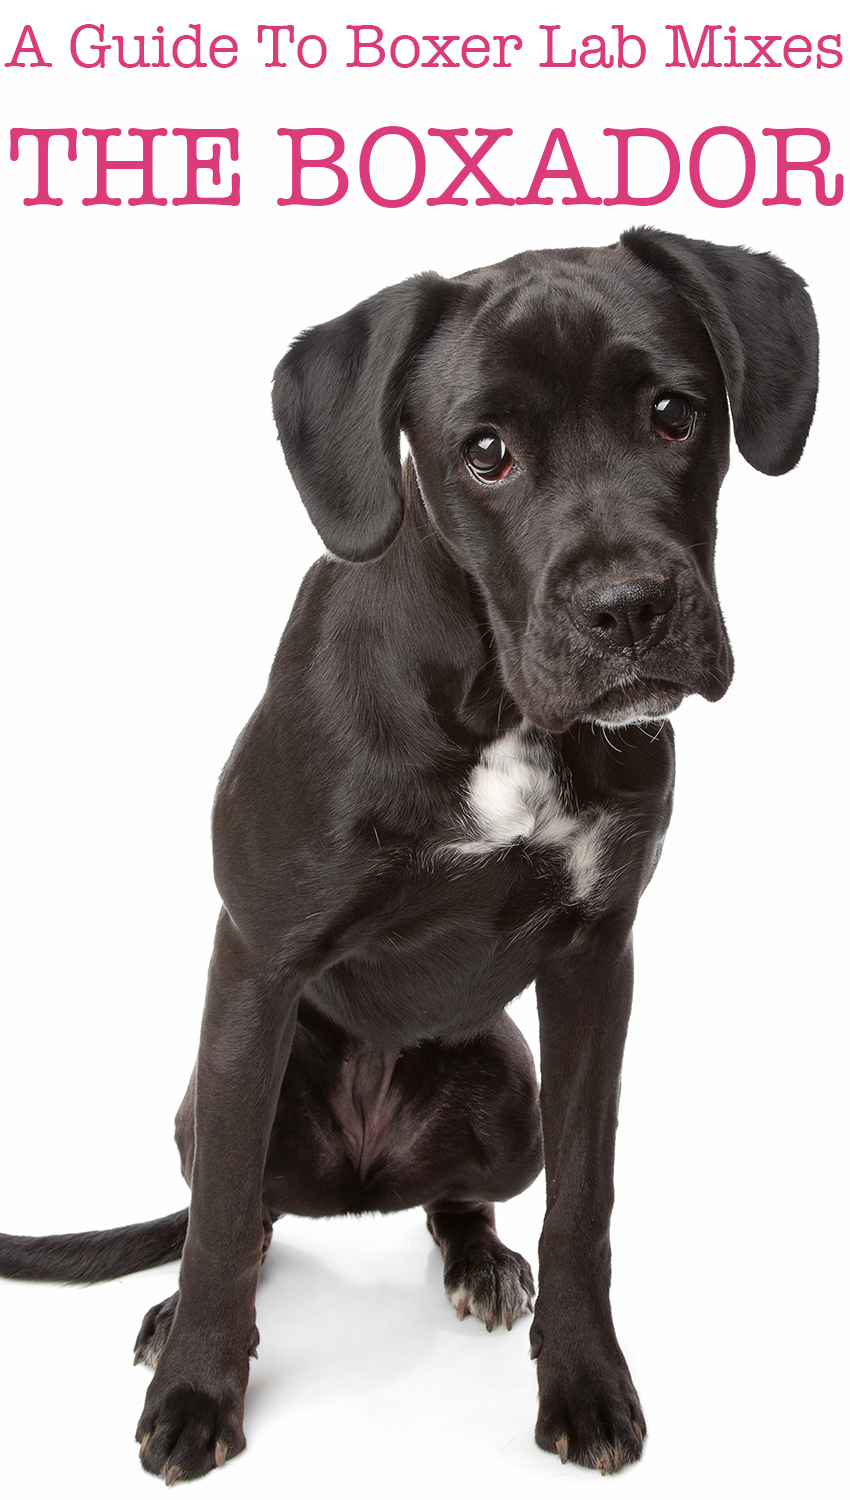 Boxer Lab Mix - Your Complete Guide to the Boxador